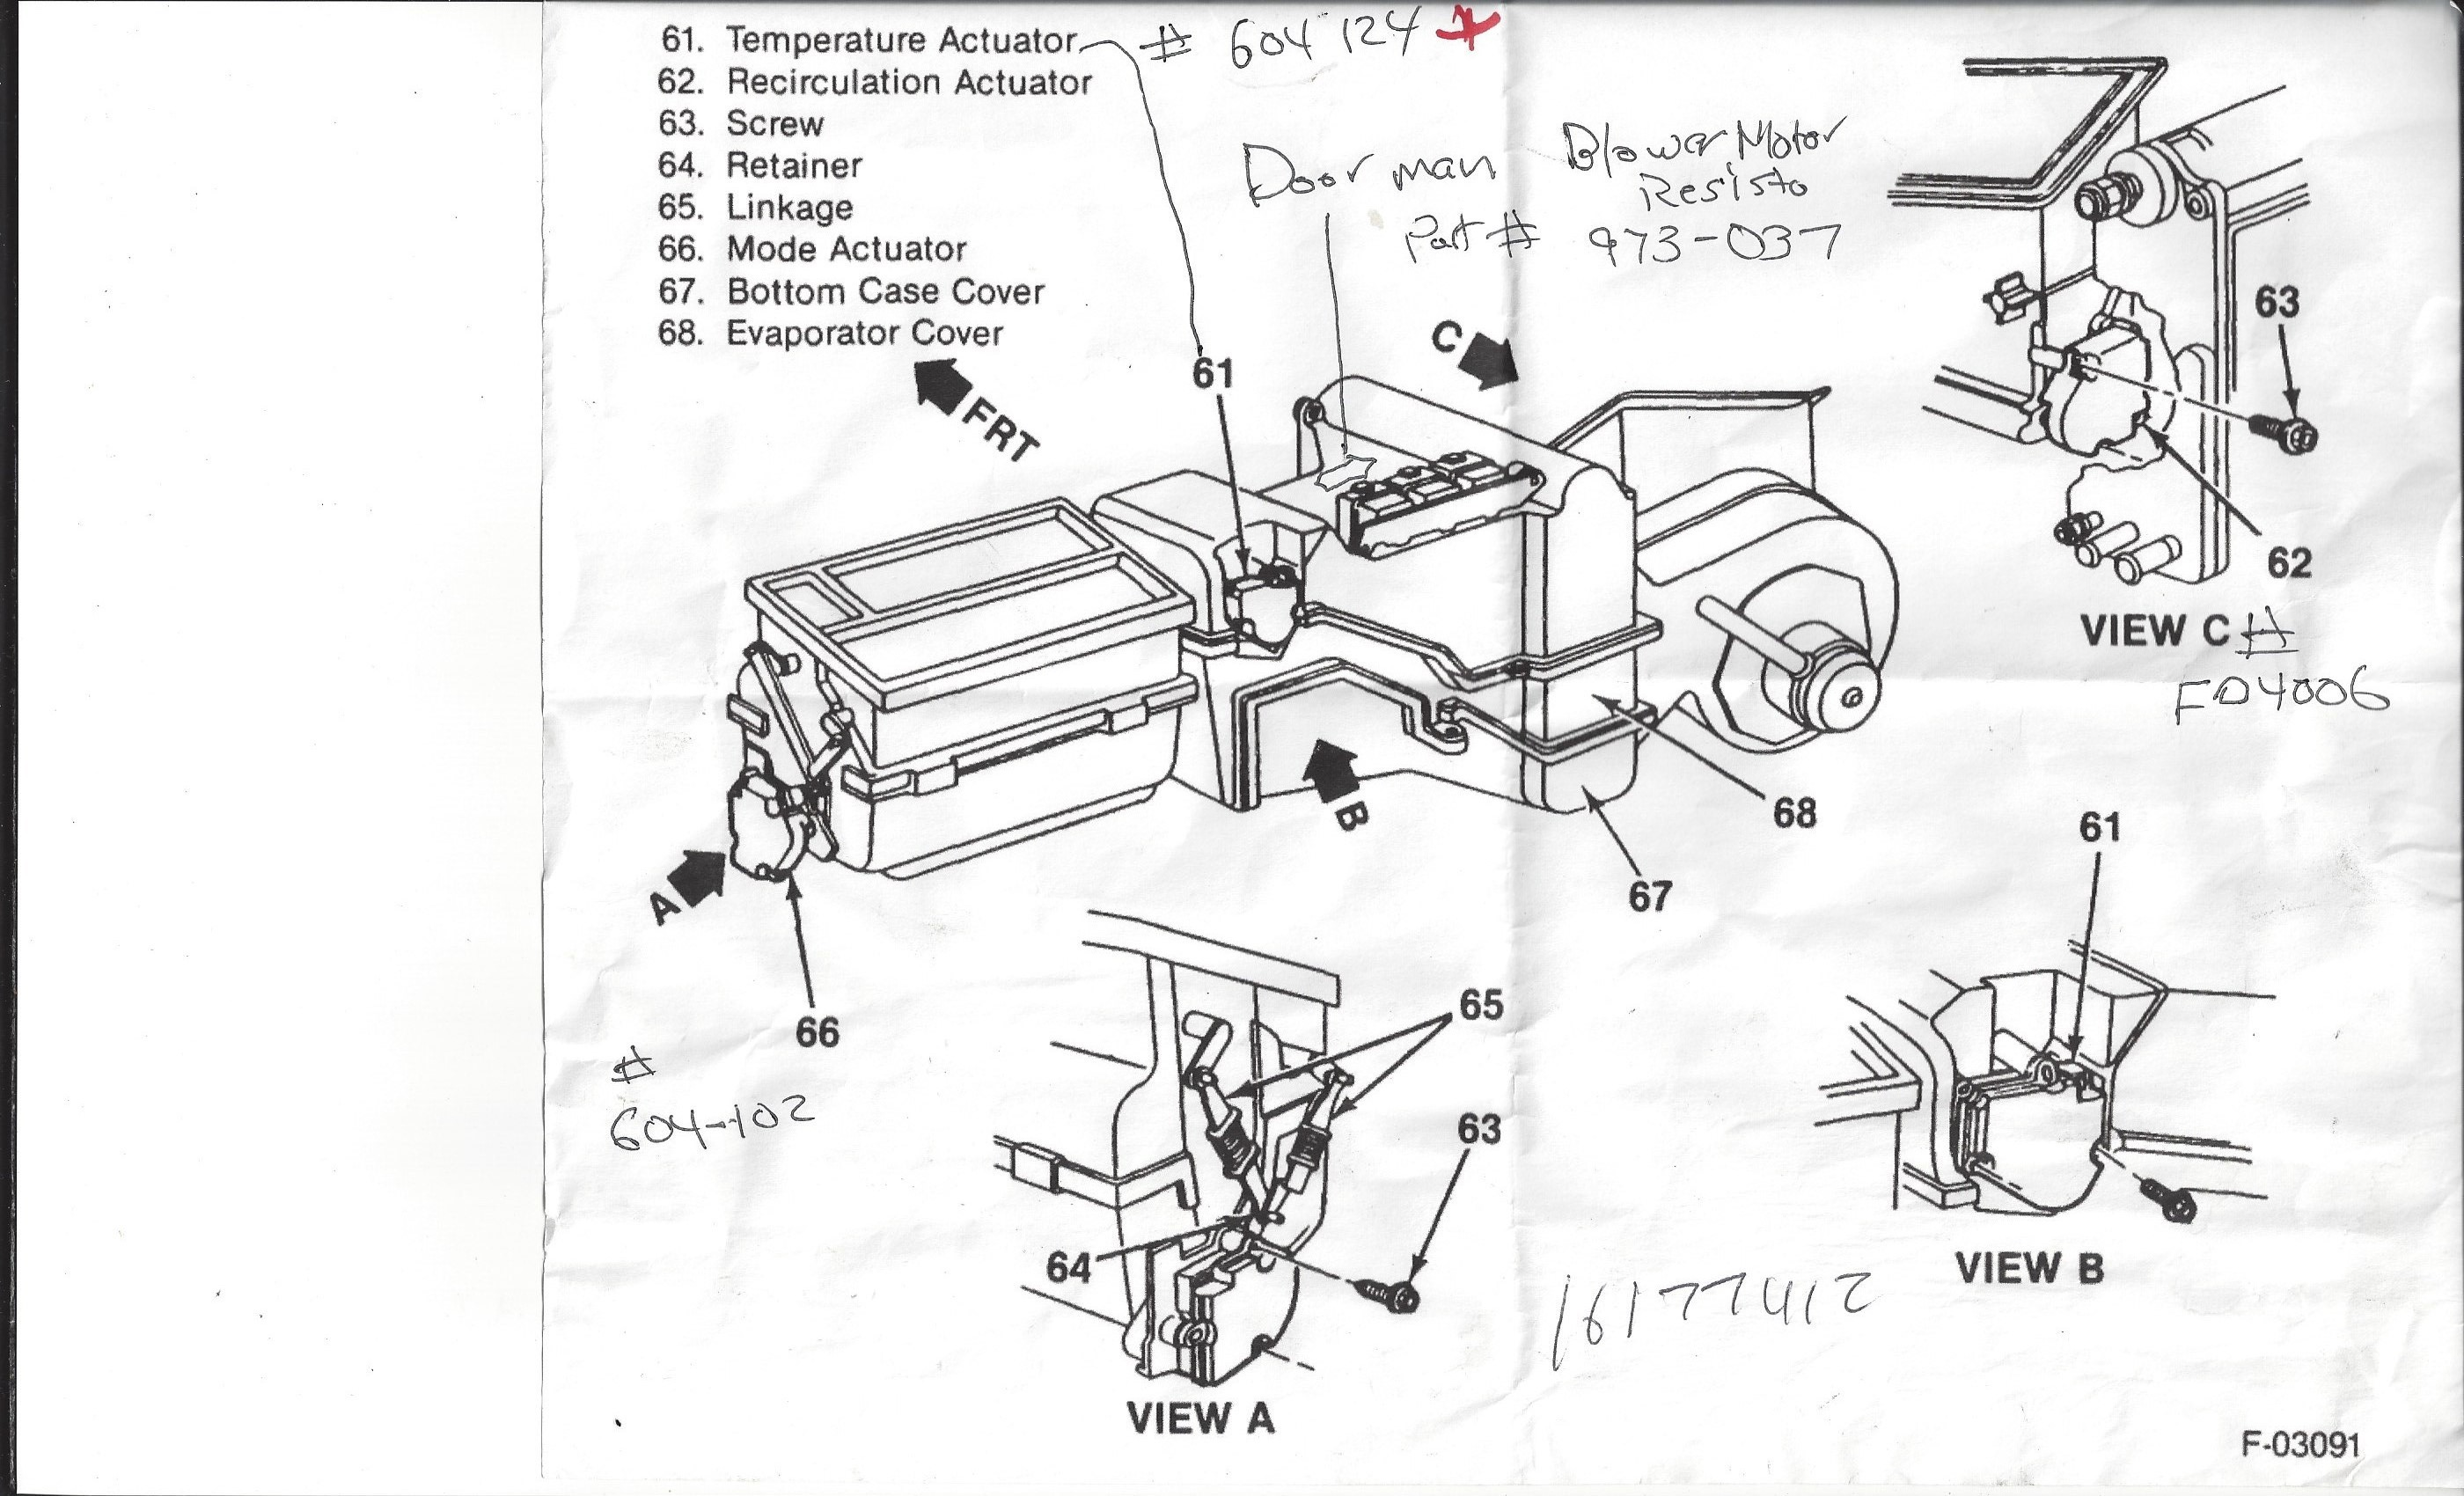 1994 GMC SIERRA STARTER WIRING DIAGRAM - Auto Electrical ...